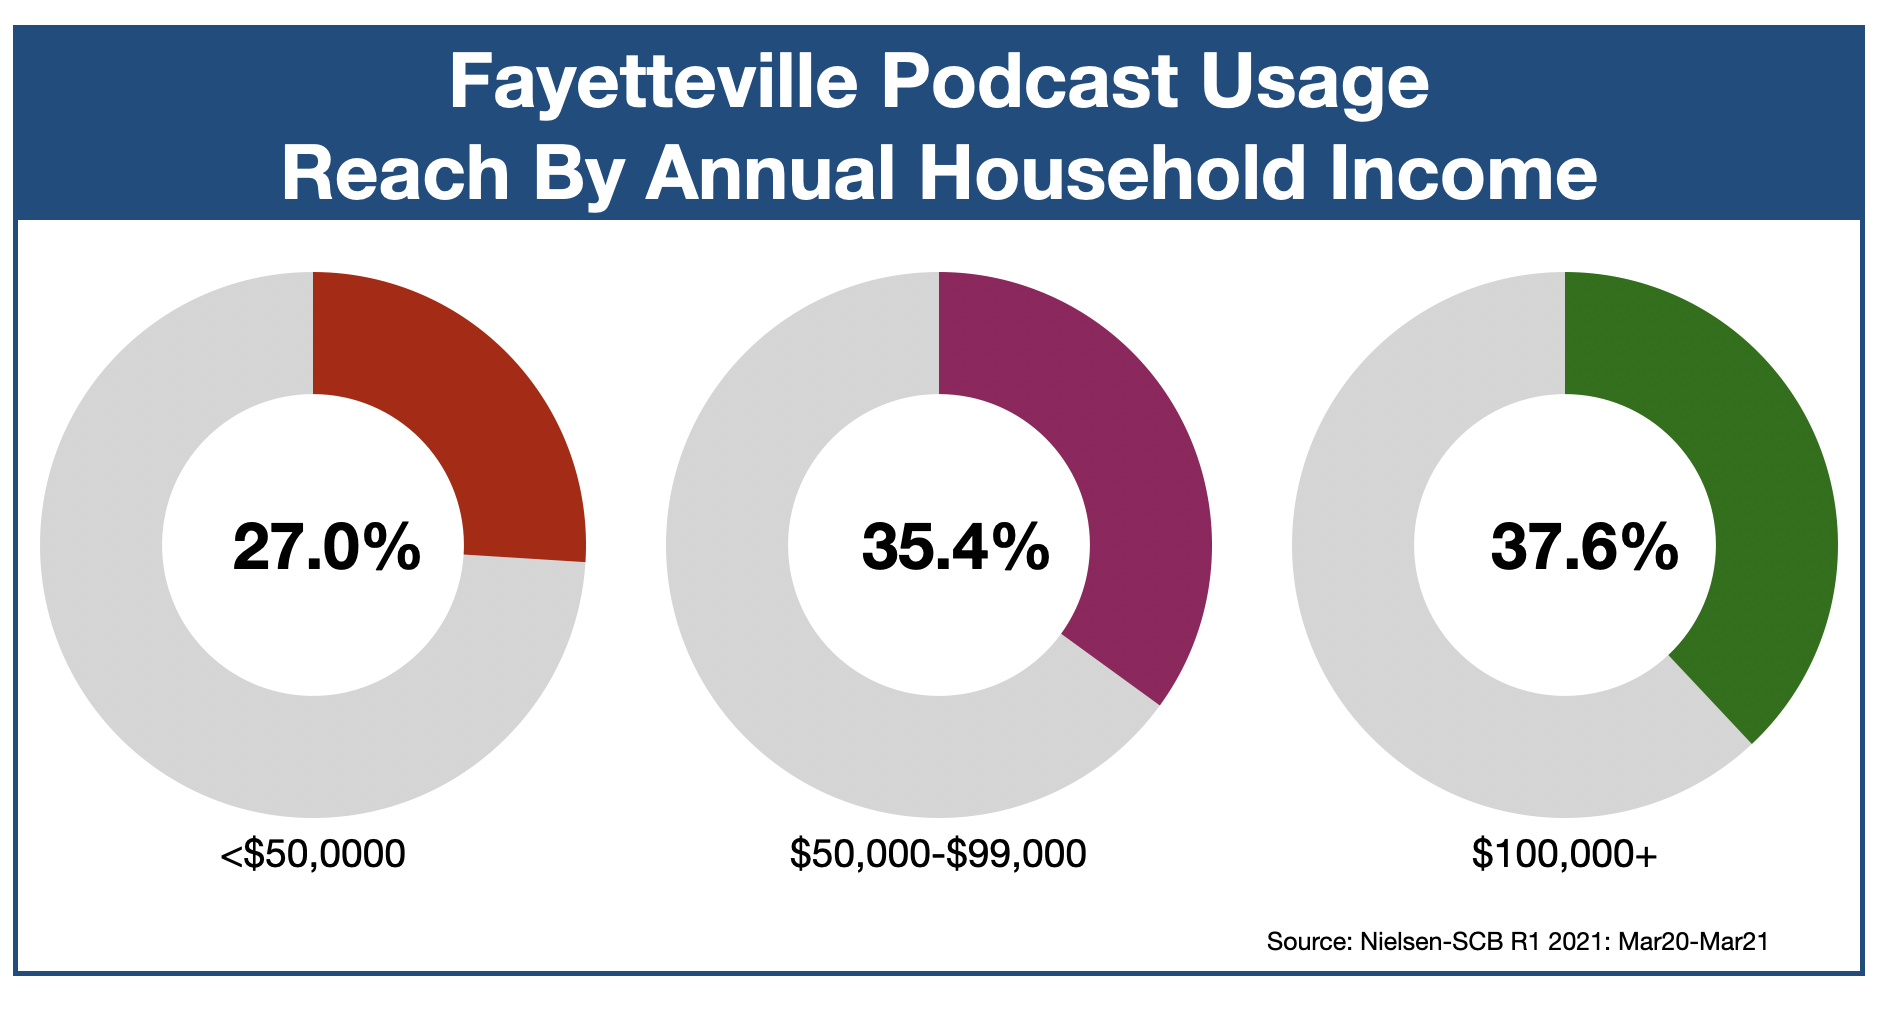 Podcast Advertising In Fayetteville Income